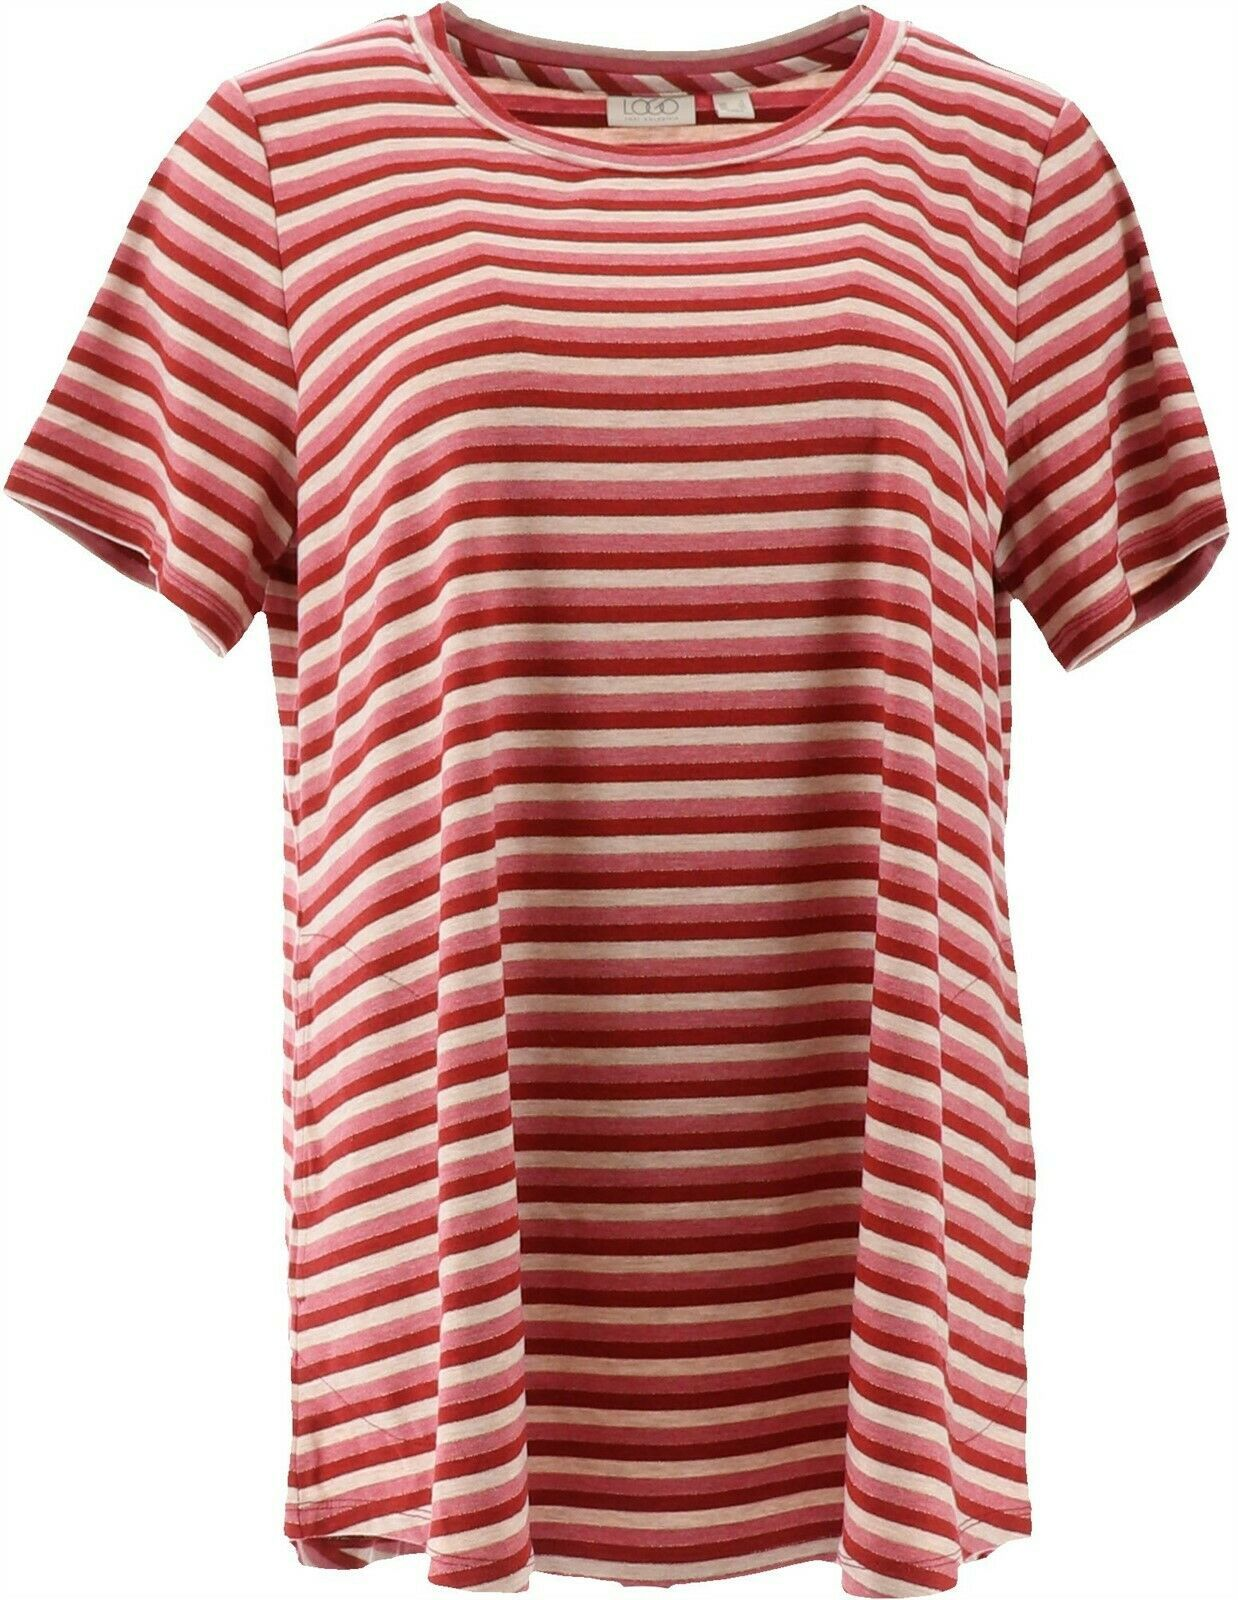 Primary image for LOGO Lori Goldstein Metallic Stripe Knit Top Short Slvs Warm Rose XL NEW A347459